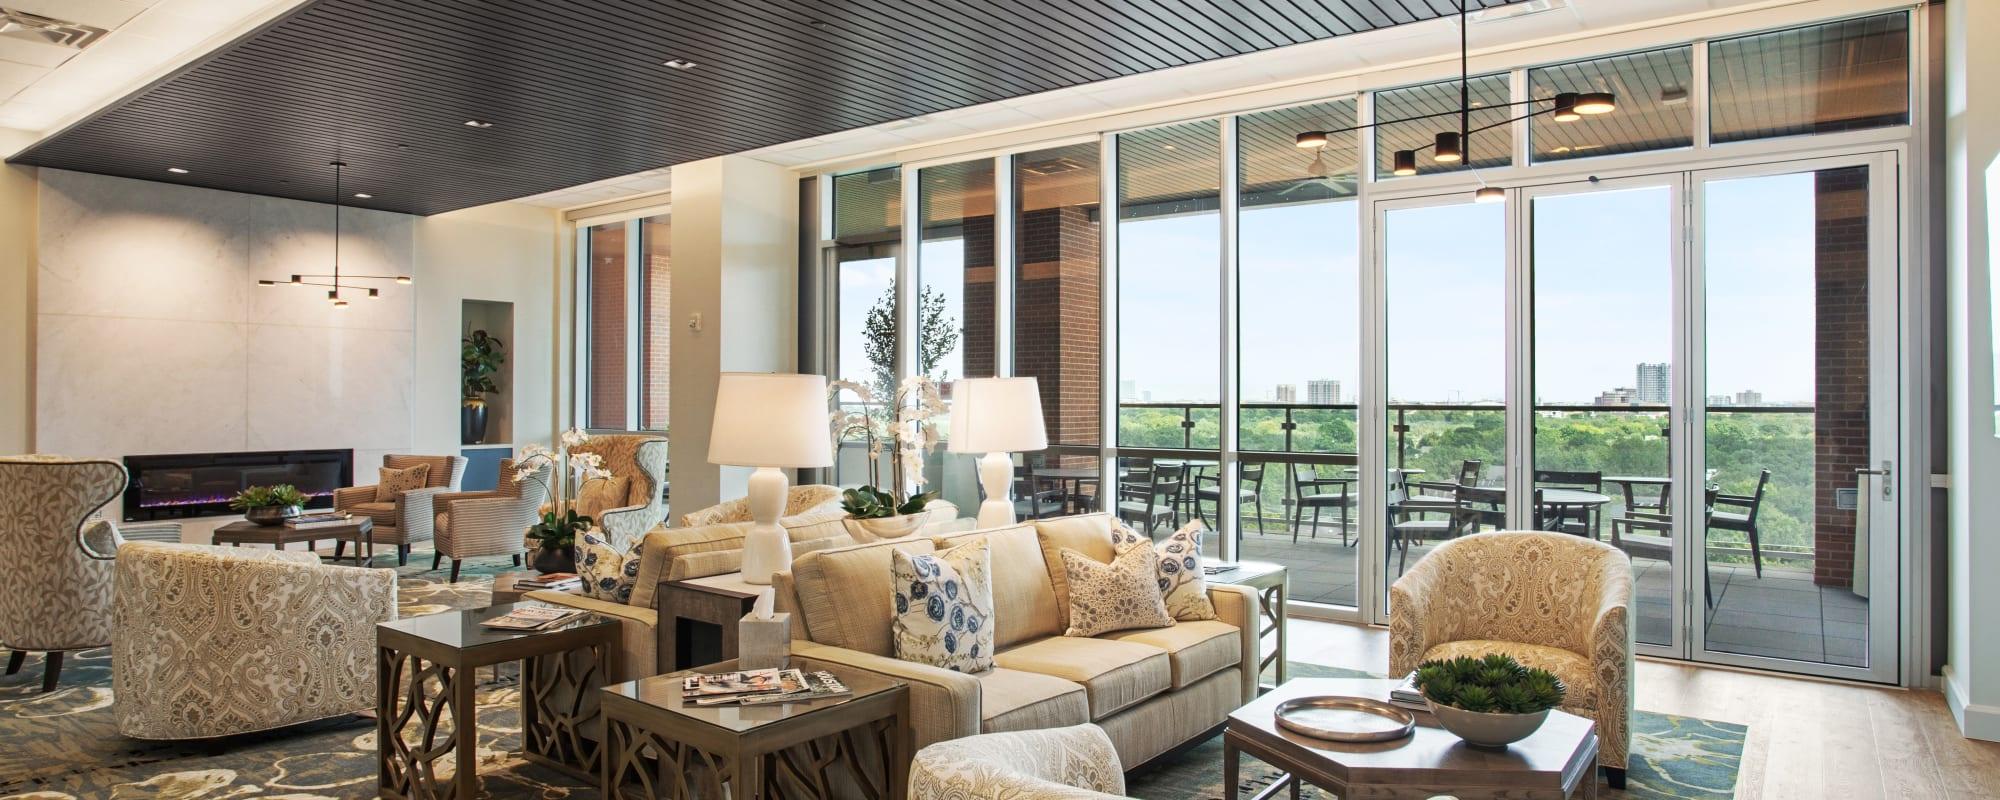 Living Options at The Village of Southampton in Houston, Texas